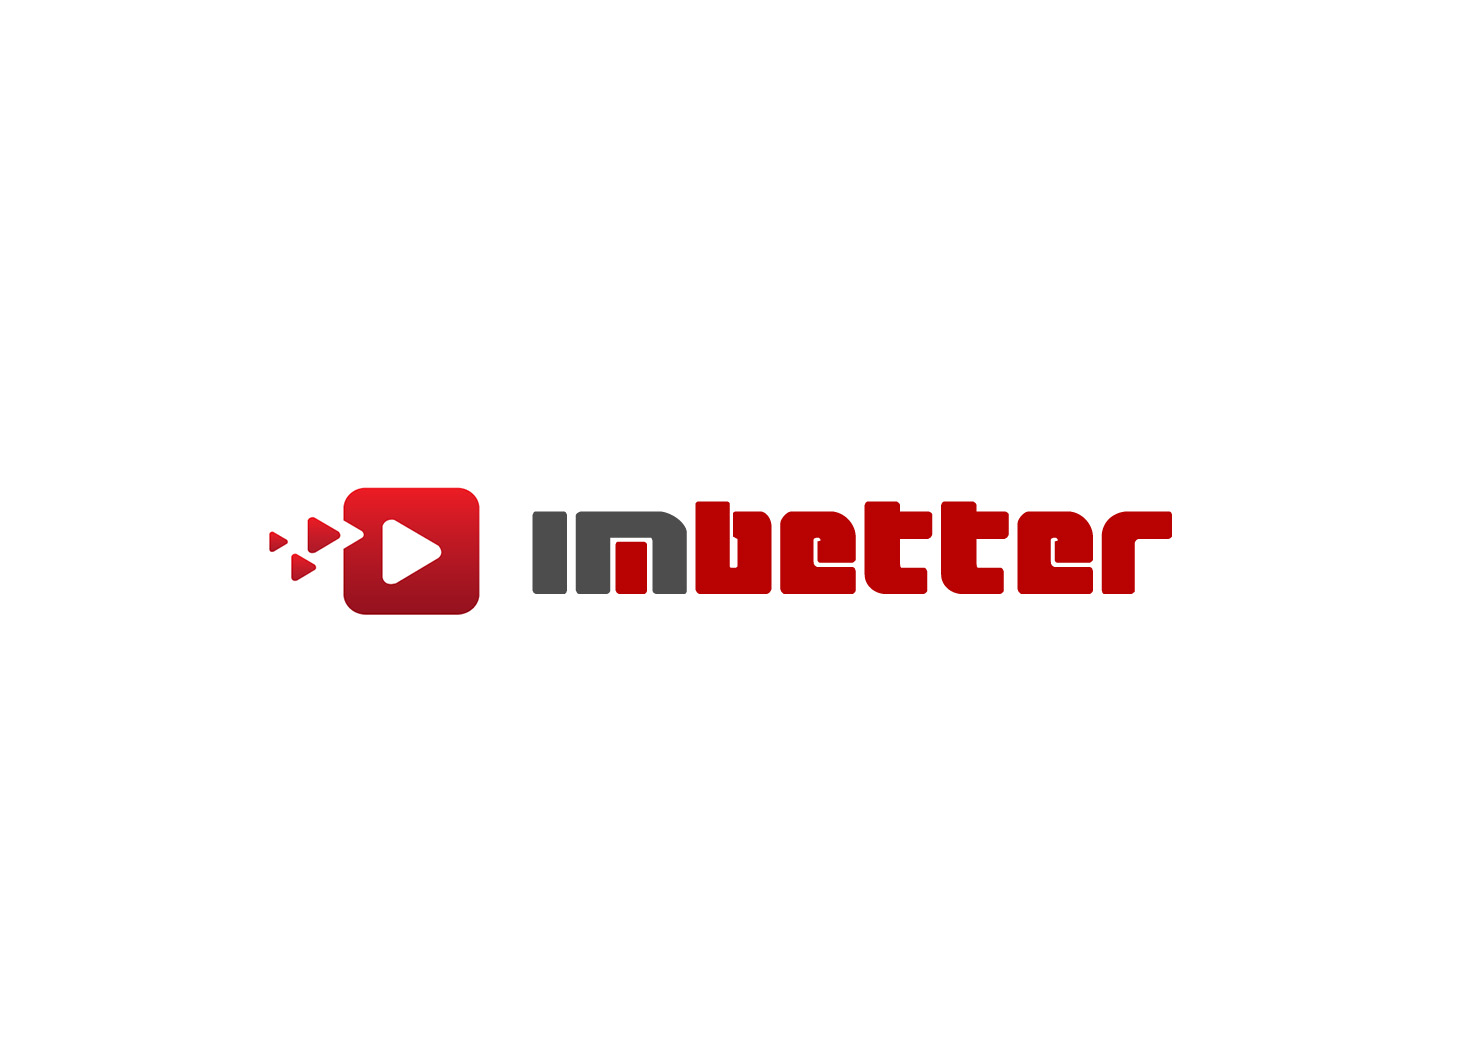 Logo Design by Burhan uddin Sheik - Entry No. 91 in the Logo Design Contest Imaginative Logo Design for imbetter.